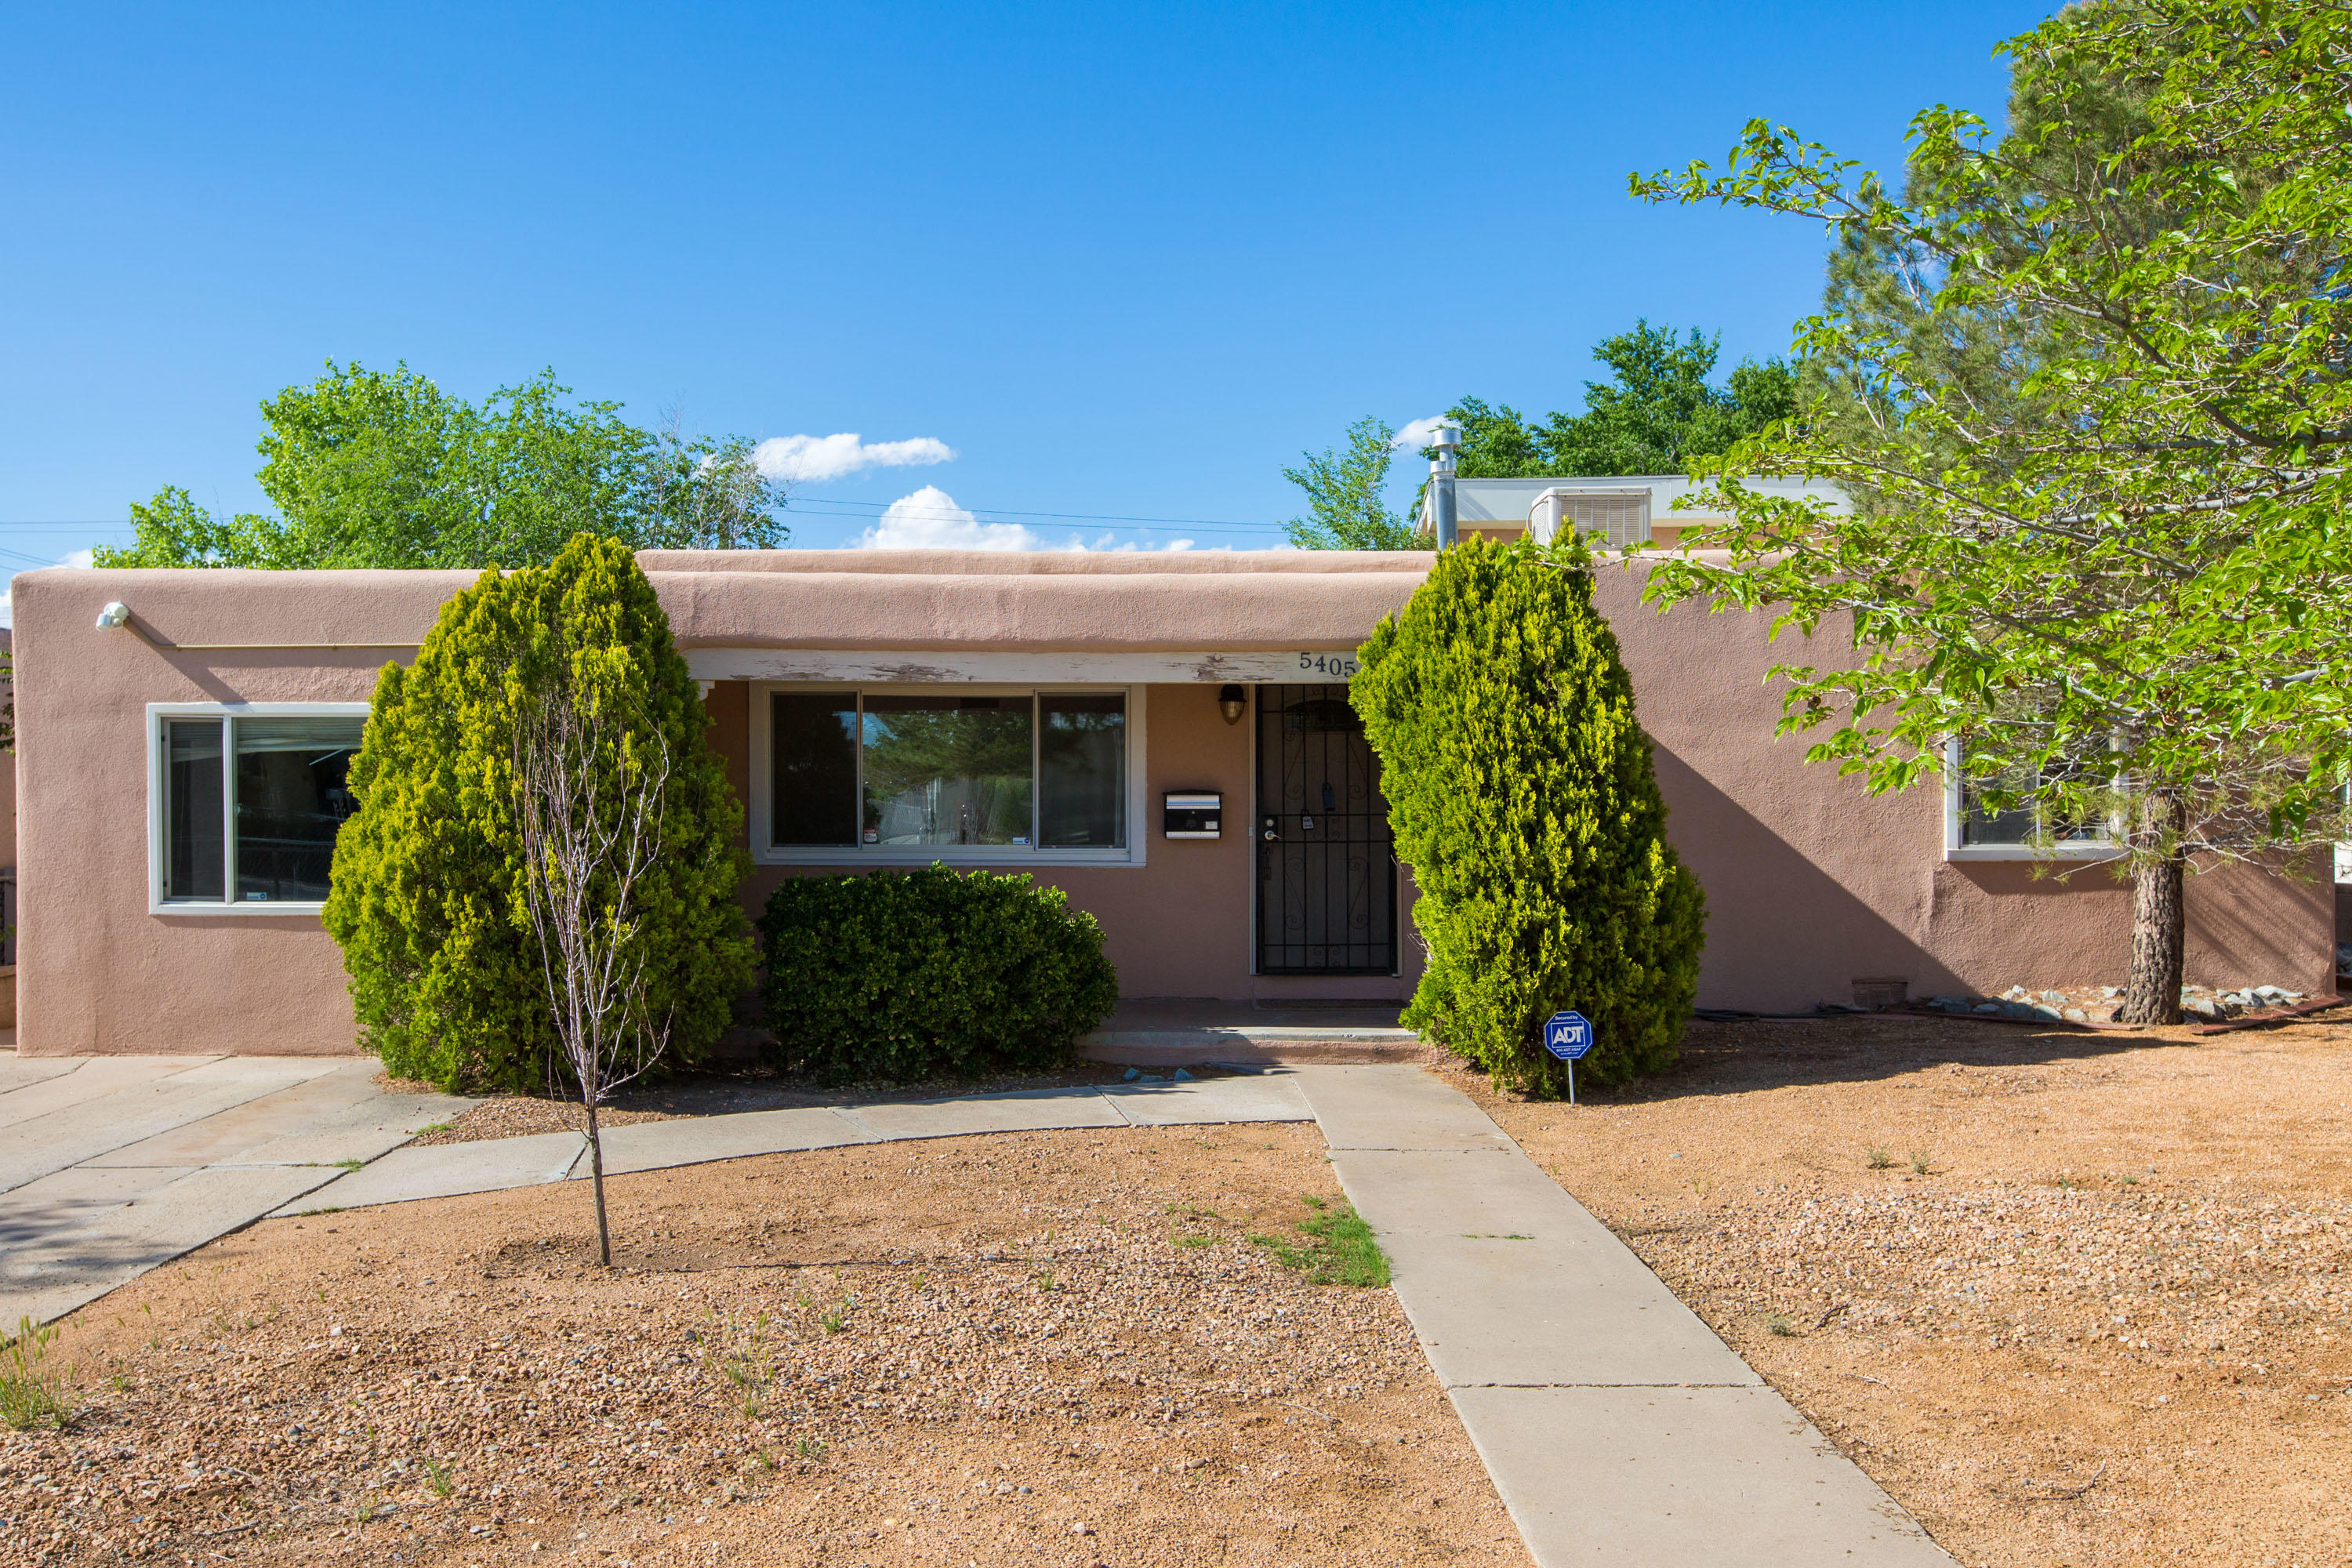 Beautiful single story home located in the Albuquerque Highlands community! Home features 1,698sf with 3 bedrooms and 2 full bathrooms. Spacious living area with gleaming hardwood floors and the perfect natural light from the large picture window. Great eat-in kitchen with white cabinetry, ample counter space, custom backsplash, stainless steel range and microwave, dishwasher and fridge plus kitchen pantry. Owner suite with his/hers closets and a private bath. Bath hosts dual sinks, an over-sized vanity, framed mirrors and a shower/tub combo with tile surround. Huge fully fenced backyard with 2 storage sheds and a patio with pergola!